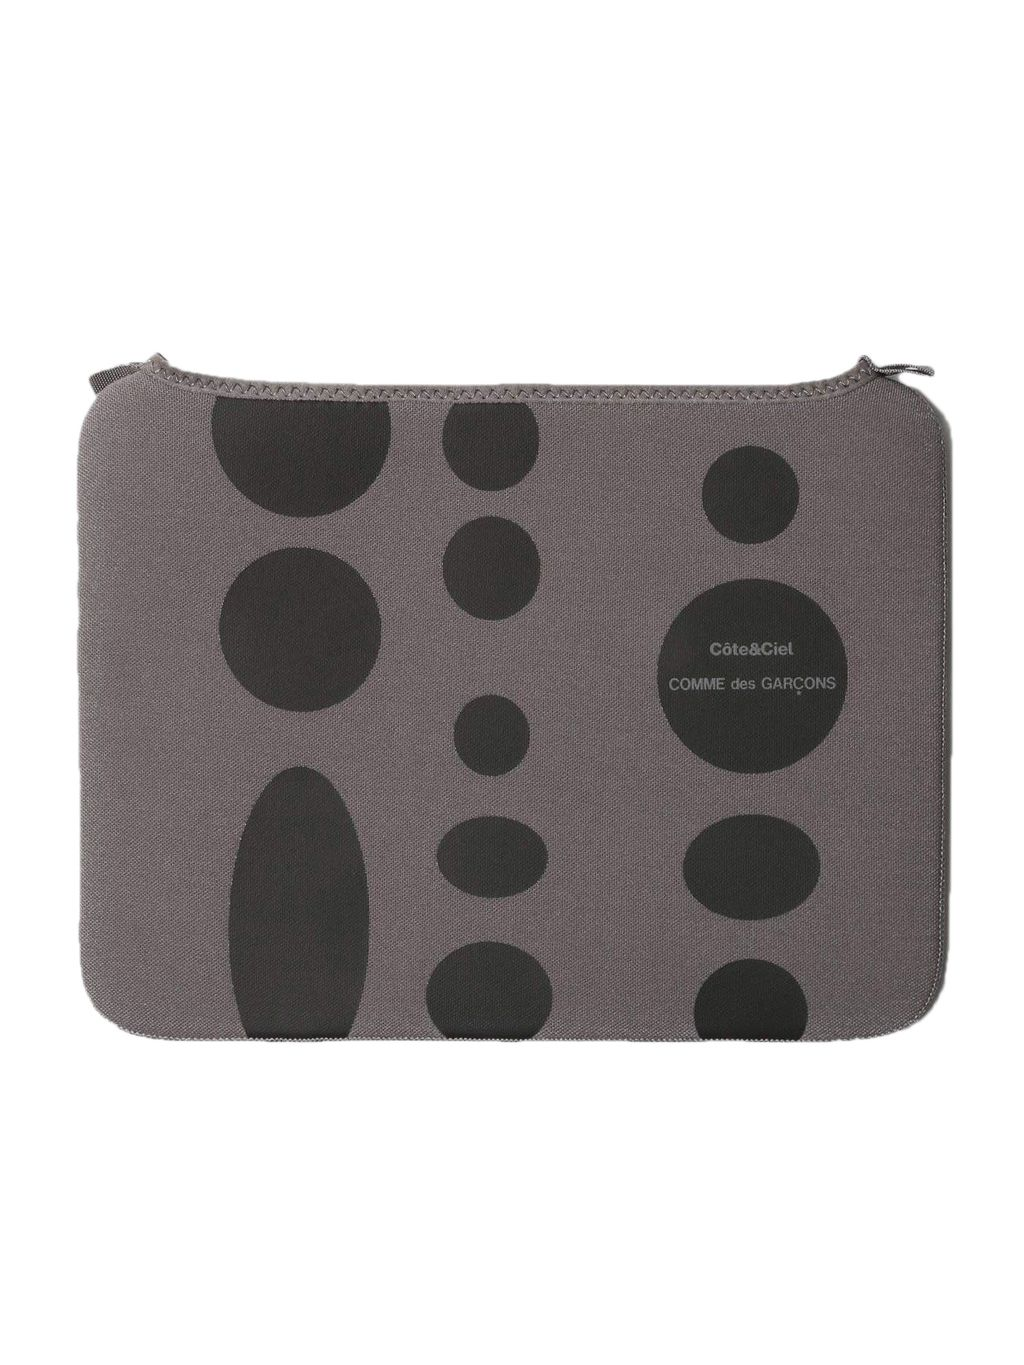 Grey Macbook Air 11 Case